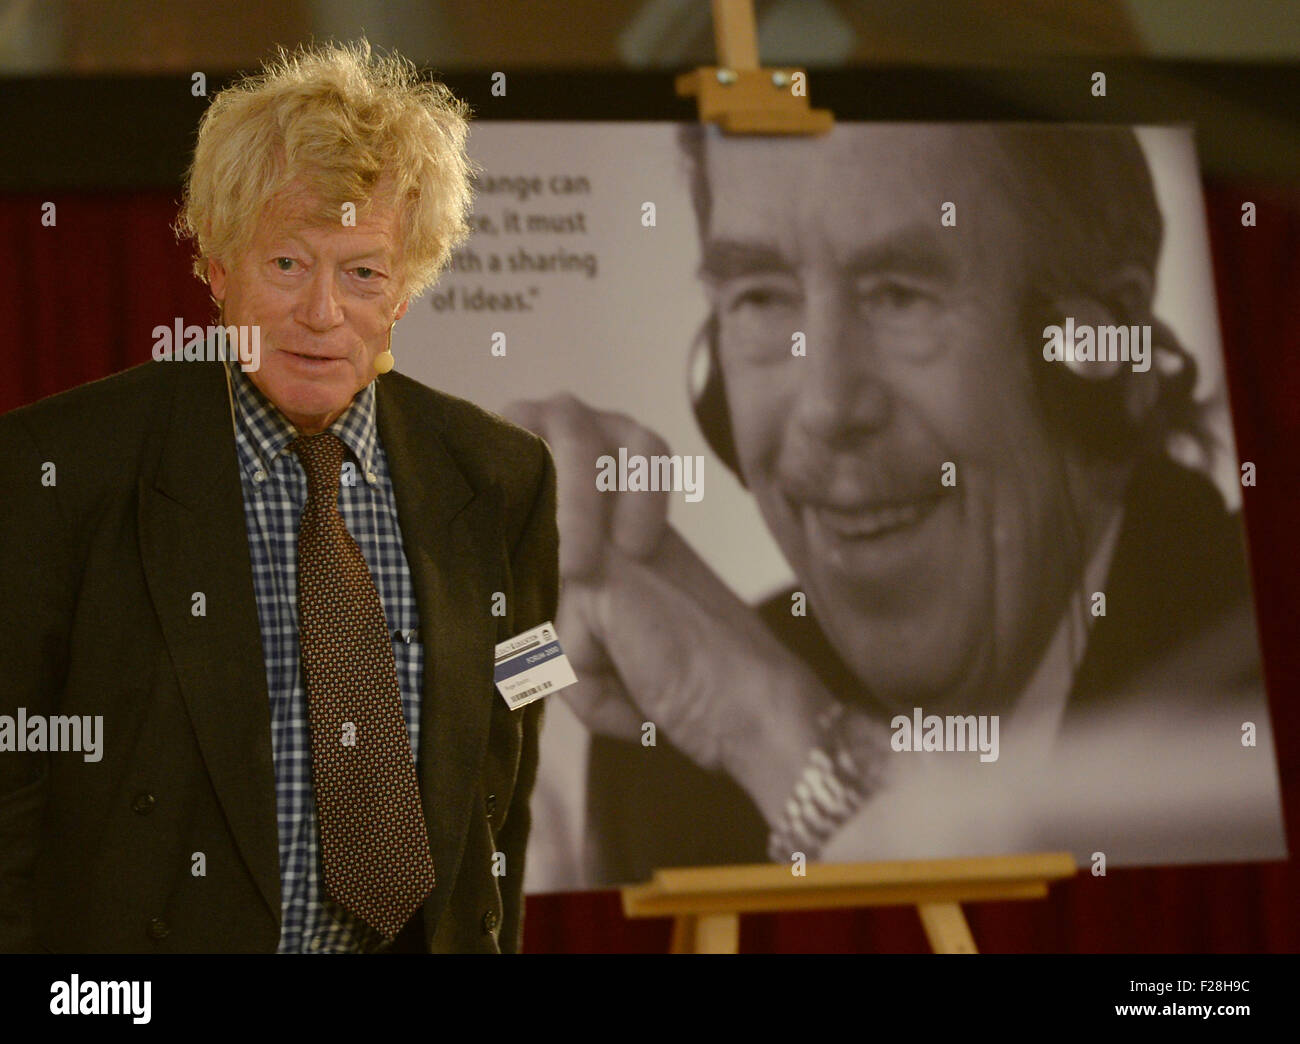 Prague, Czech Republic. 14th Sep, 2015. British English philosopher Roger Scruton attends the Forum 2000 conference - Stock Image